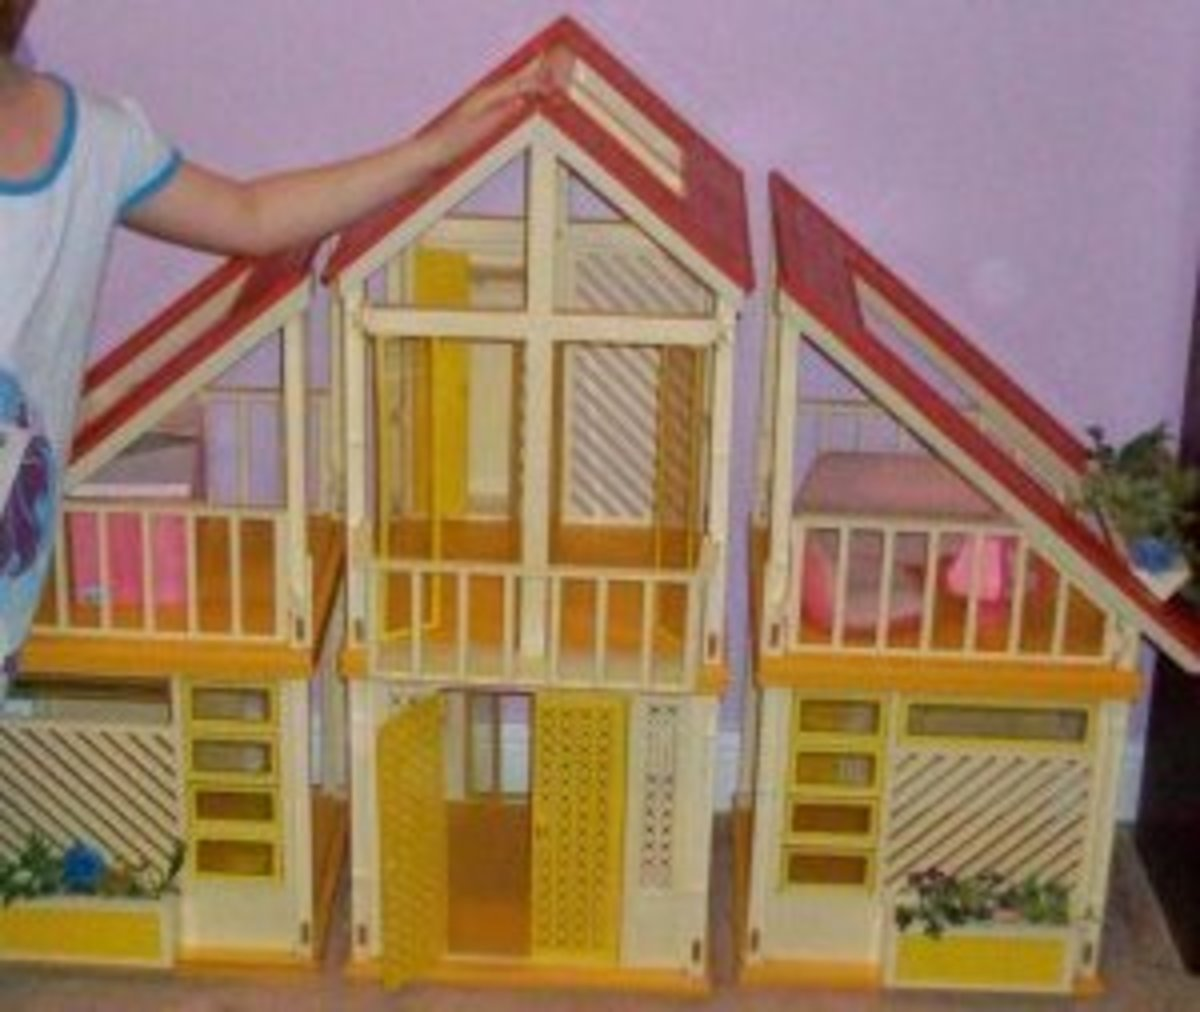 1980 Barbie Dream House, well loved and still sturdy, 30 years later.